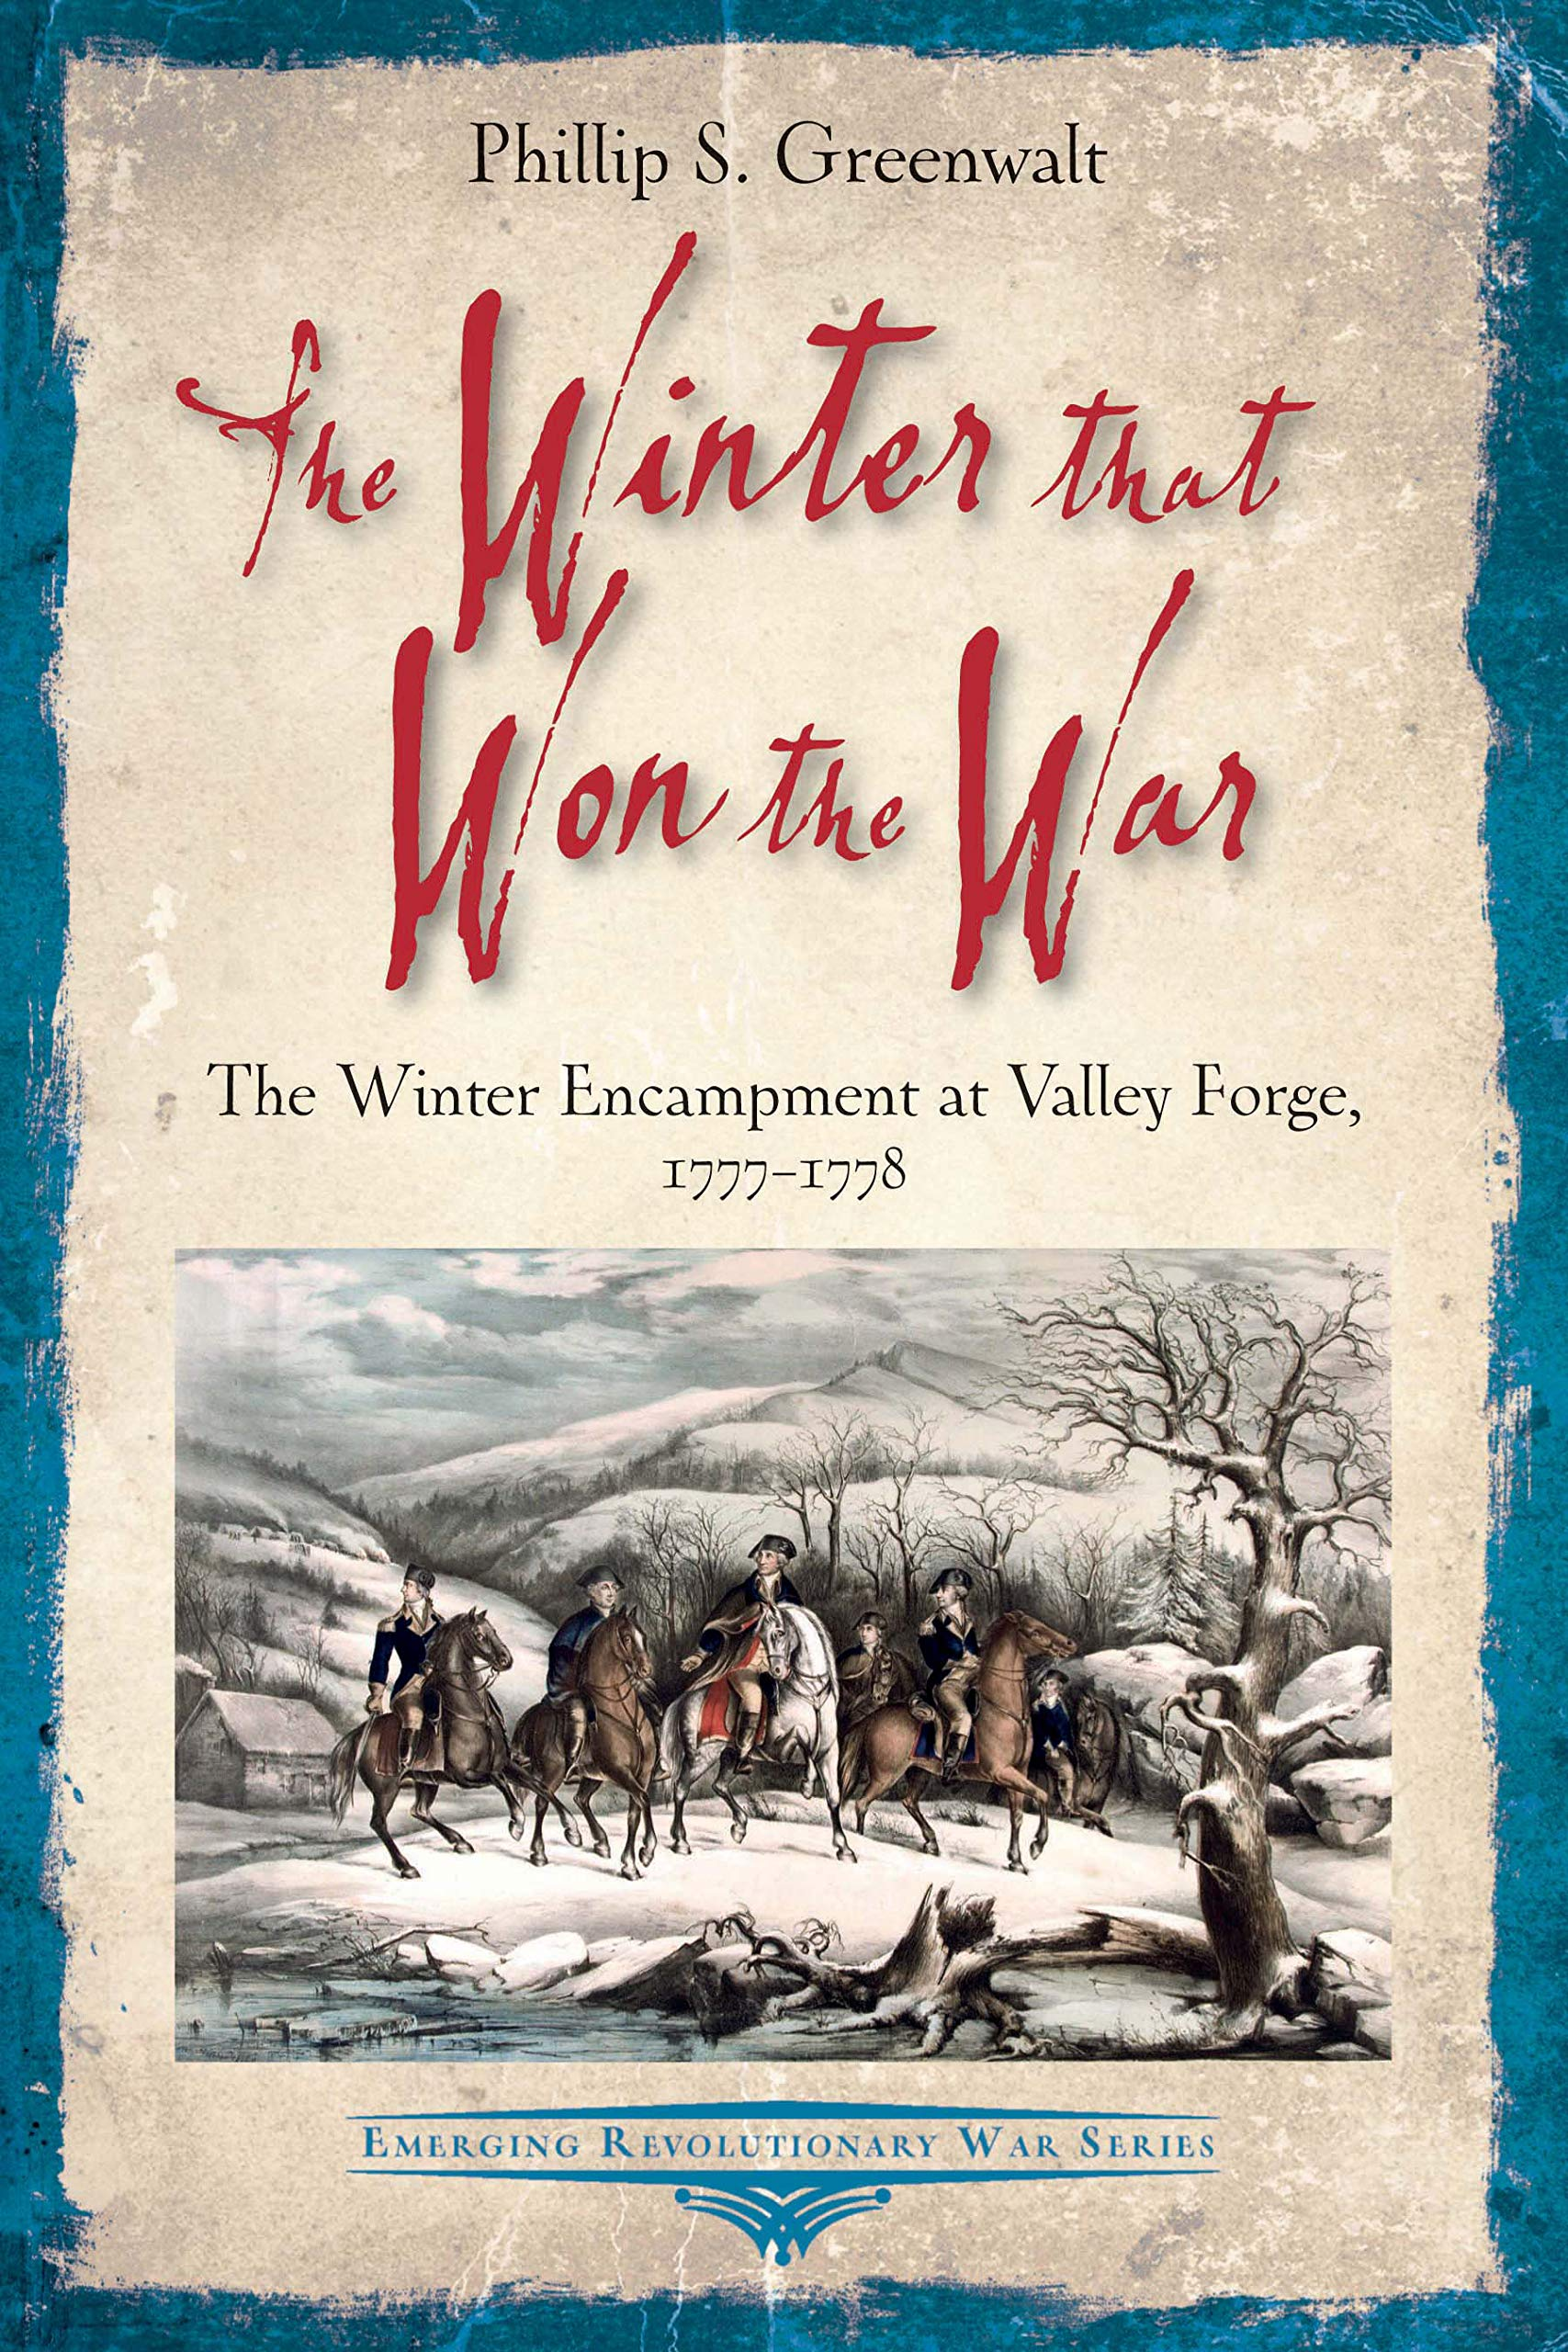 Marching Out of Valley Forge